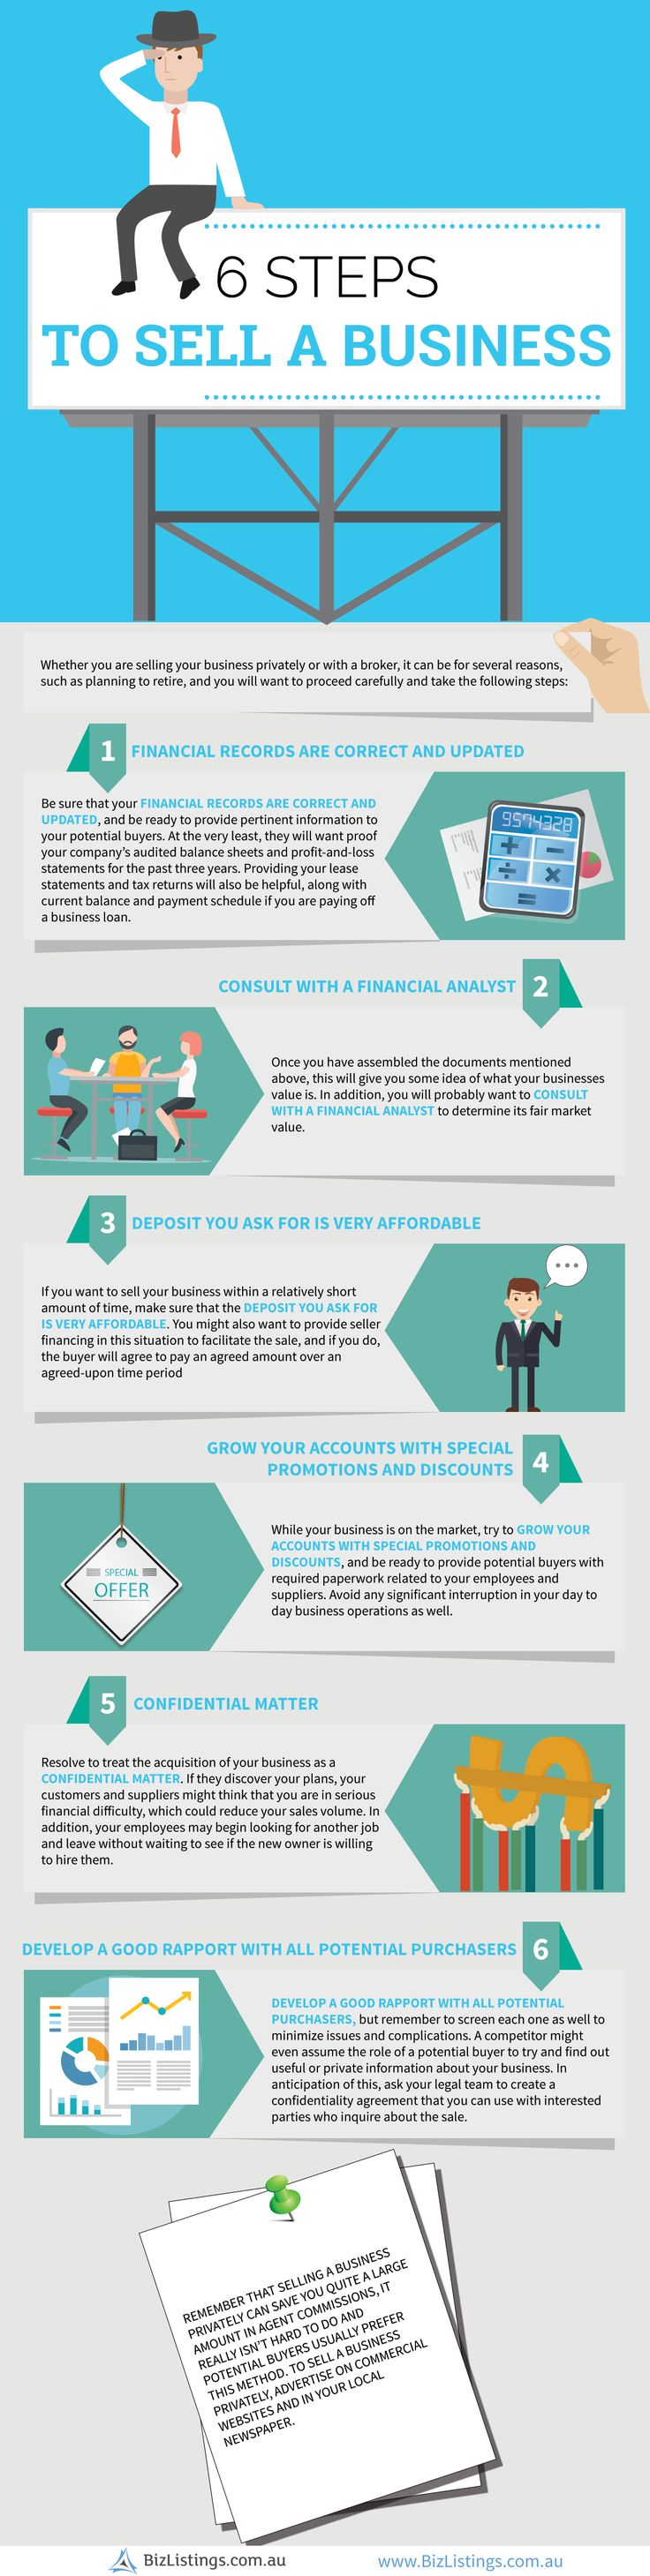 6 Steps to Sell a Business